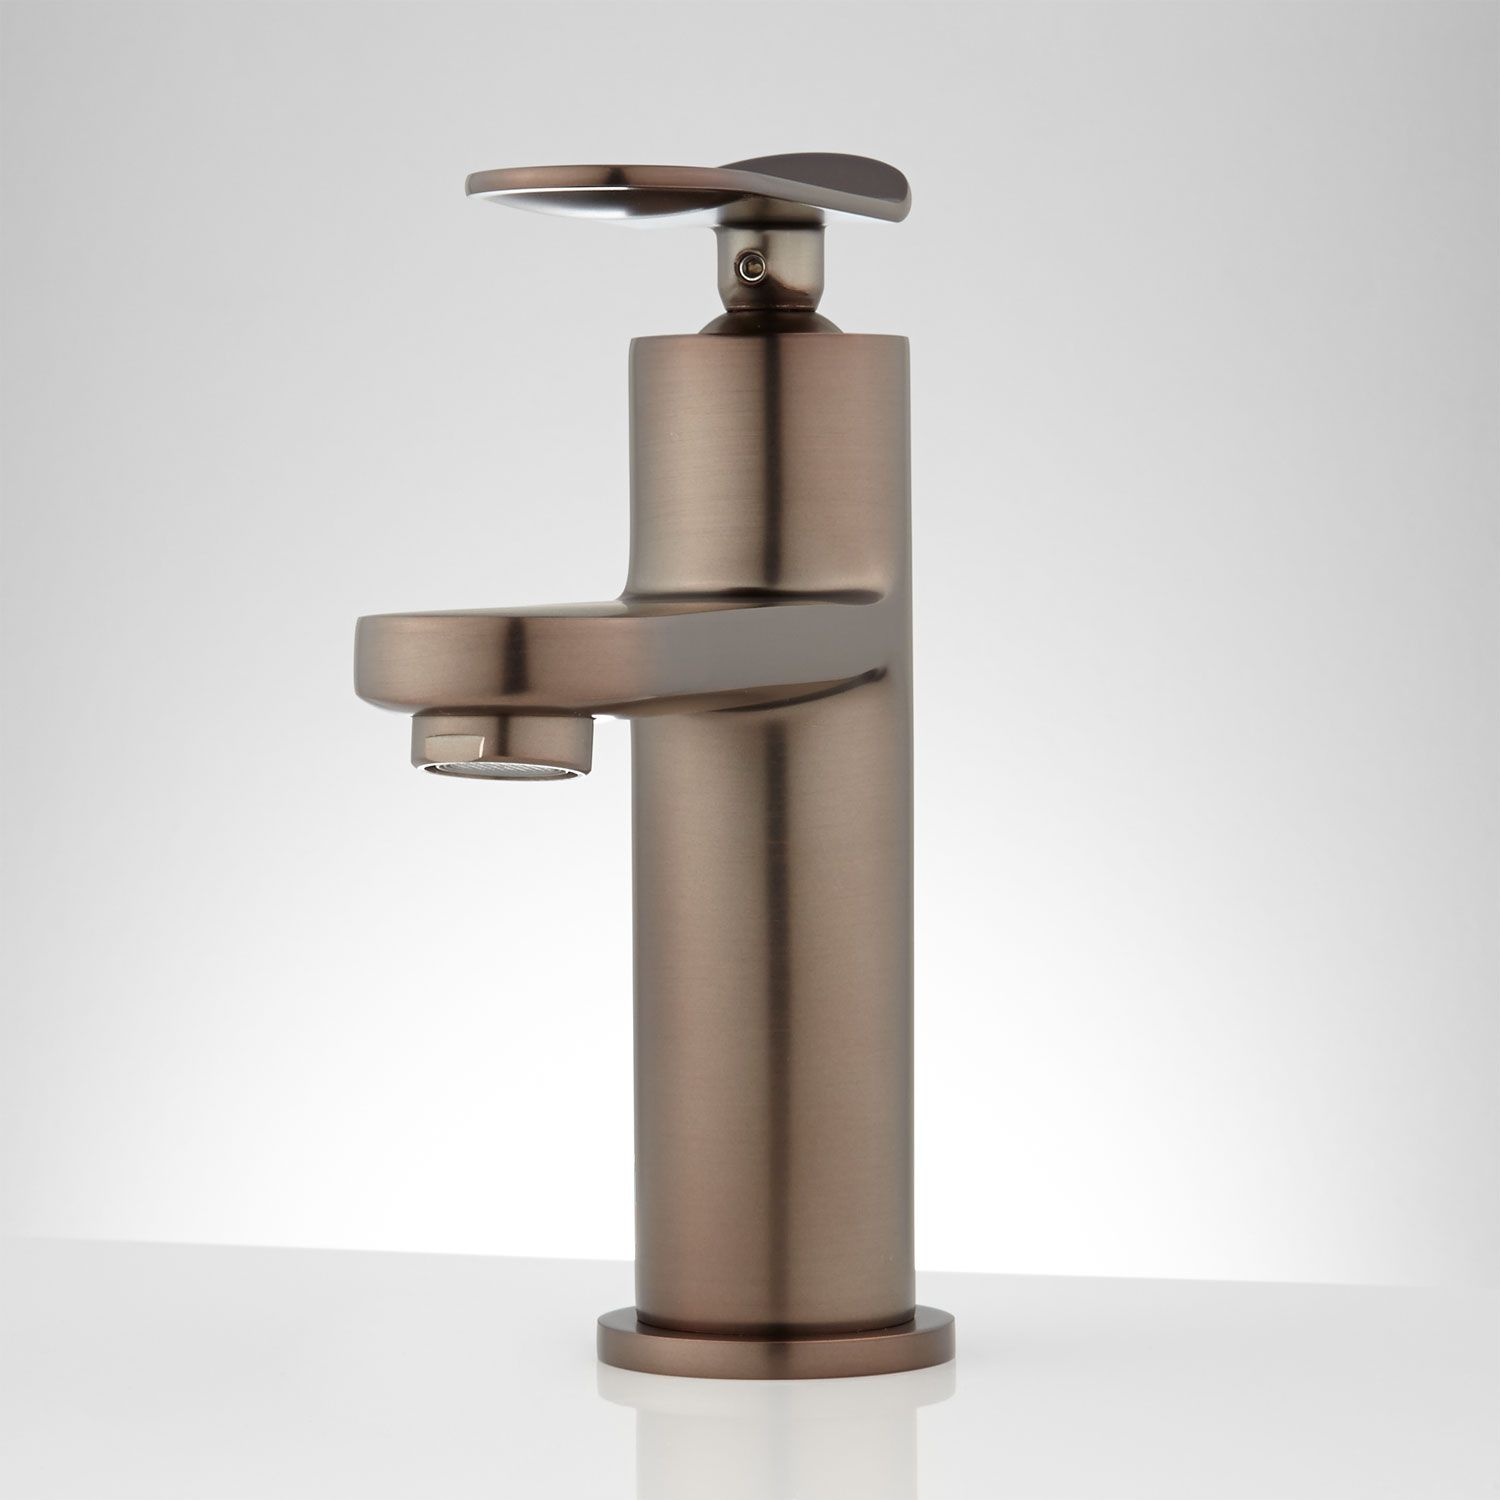 Clyde Single-Hole Bathroom Faucet | Faucet and Products